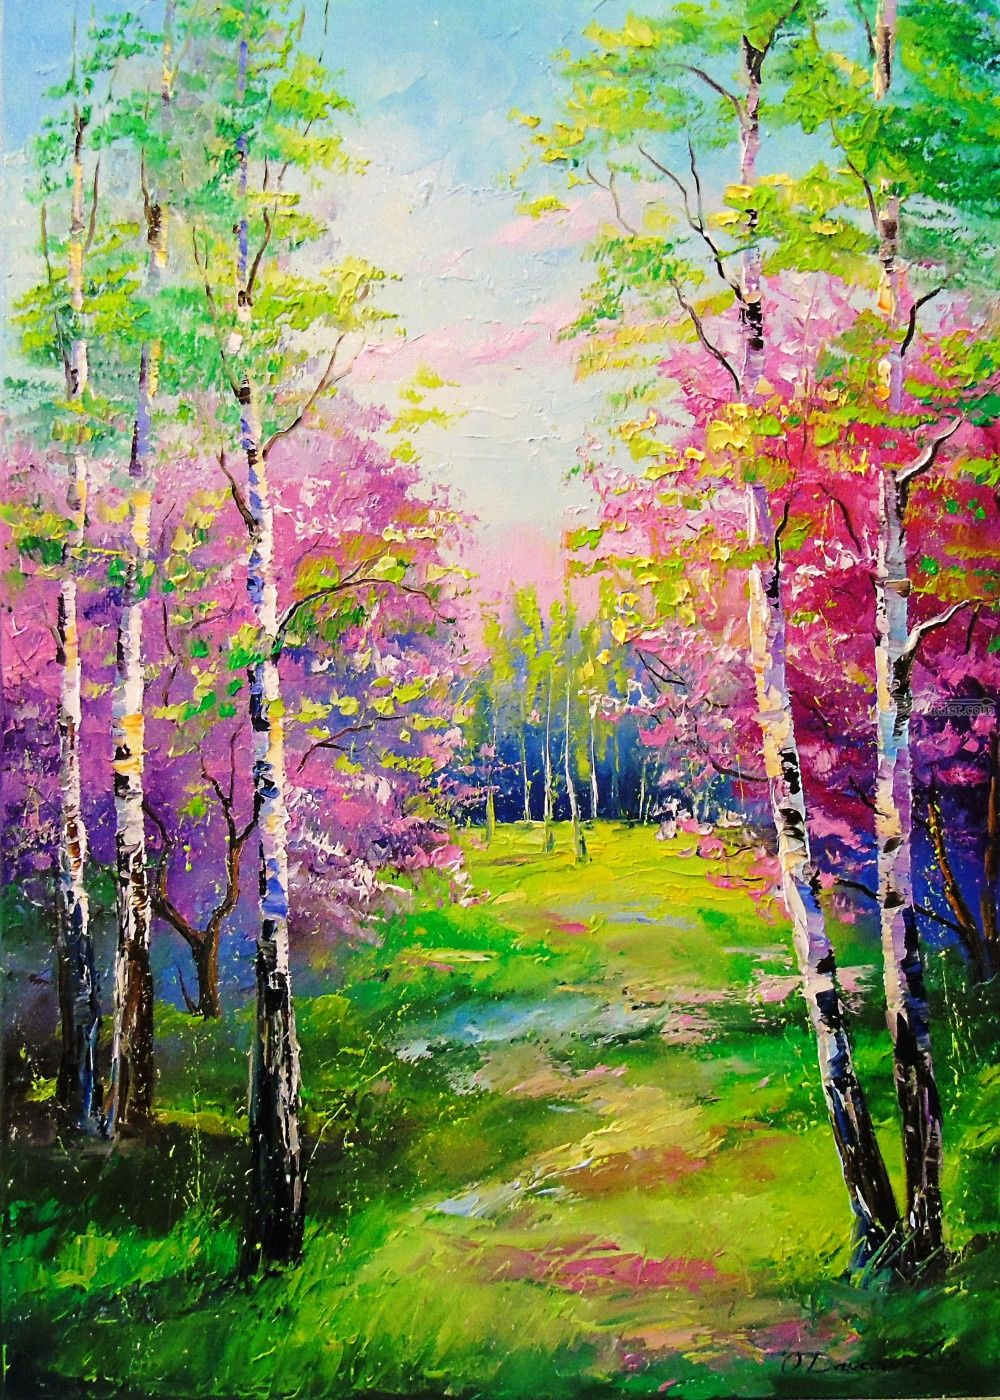 Big spring birch landscape painting Original  spring painting on canvas Birch trees and flowers painting wow wall art landscape painting